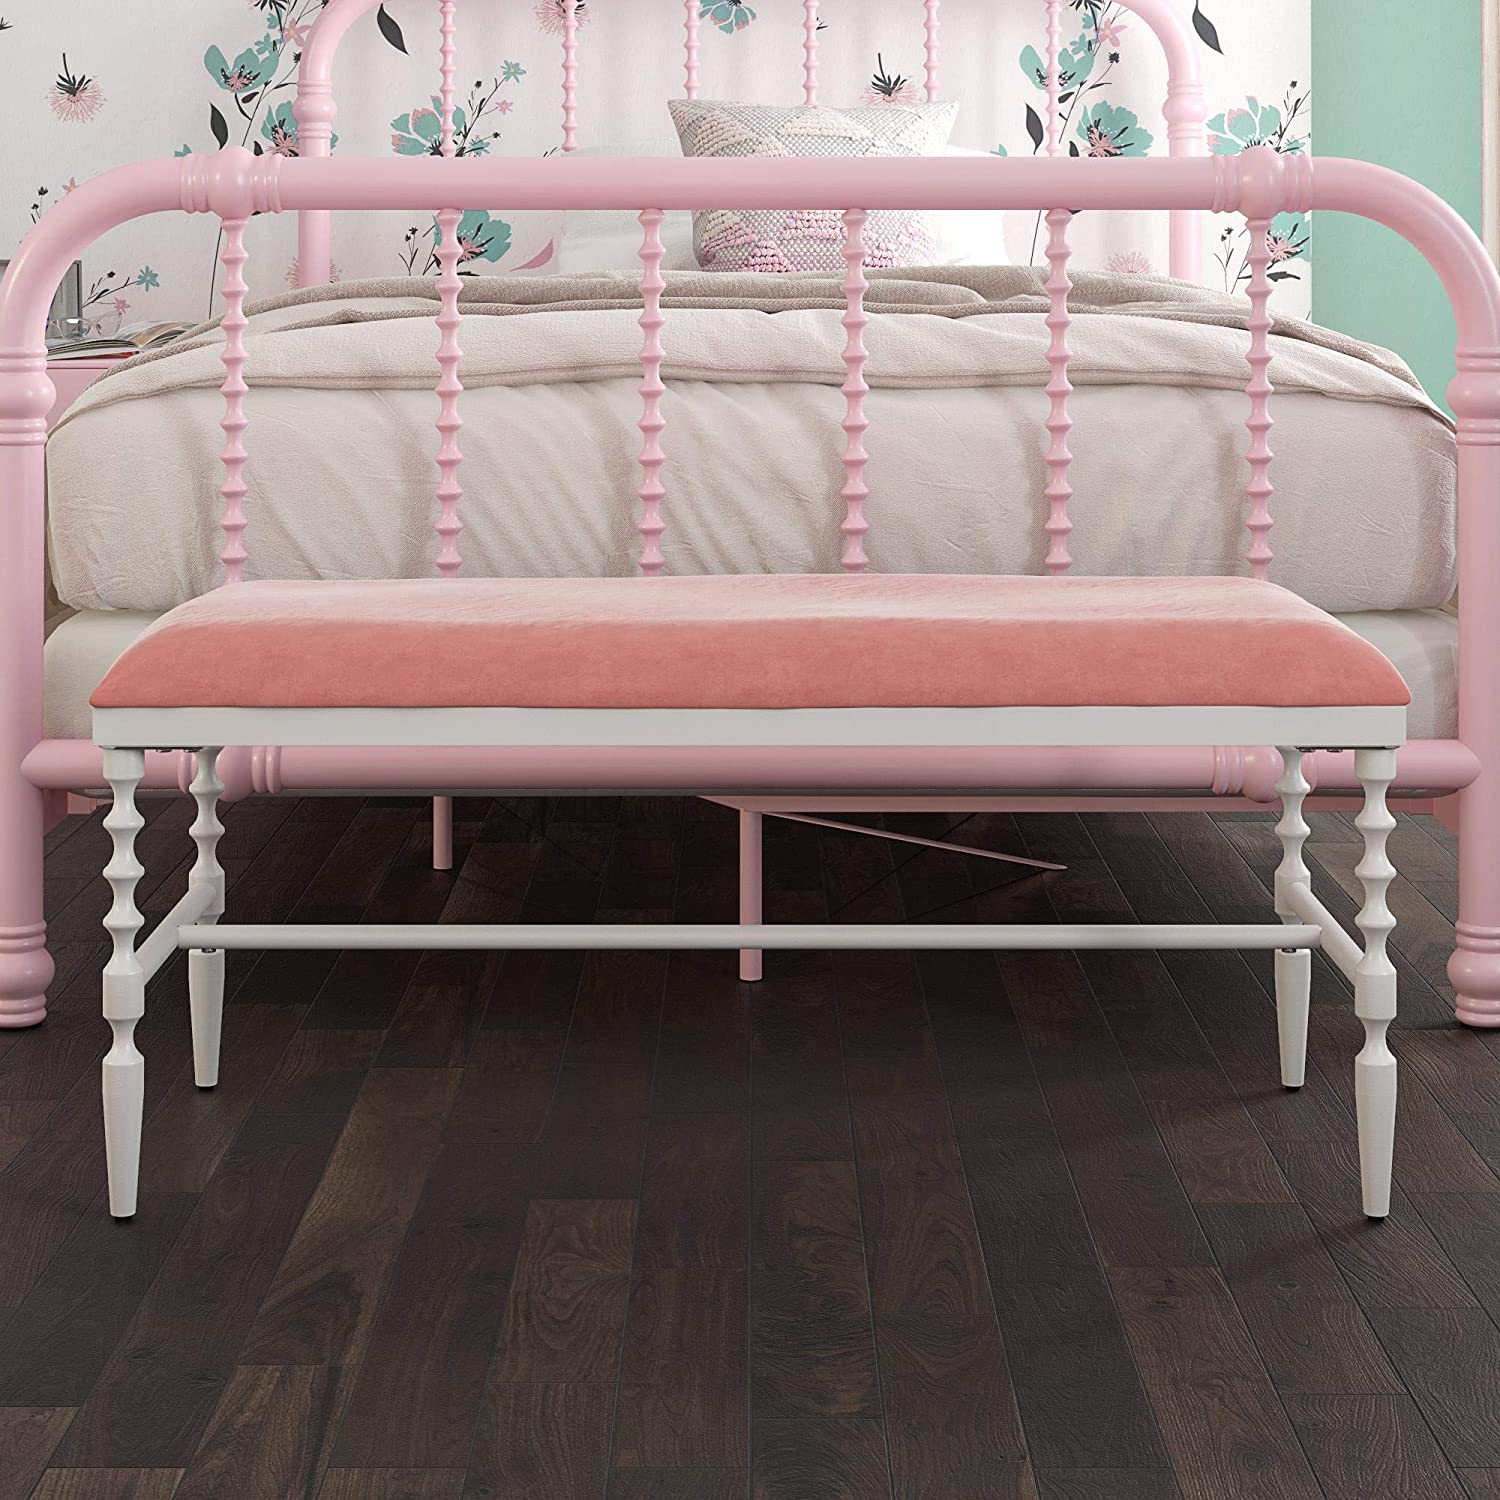 DHP Evin Chic Bench, Upholstered Seat with Cushion, Pink